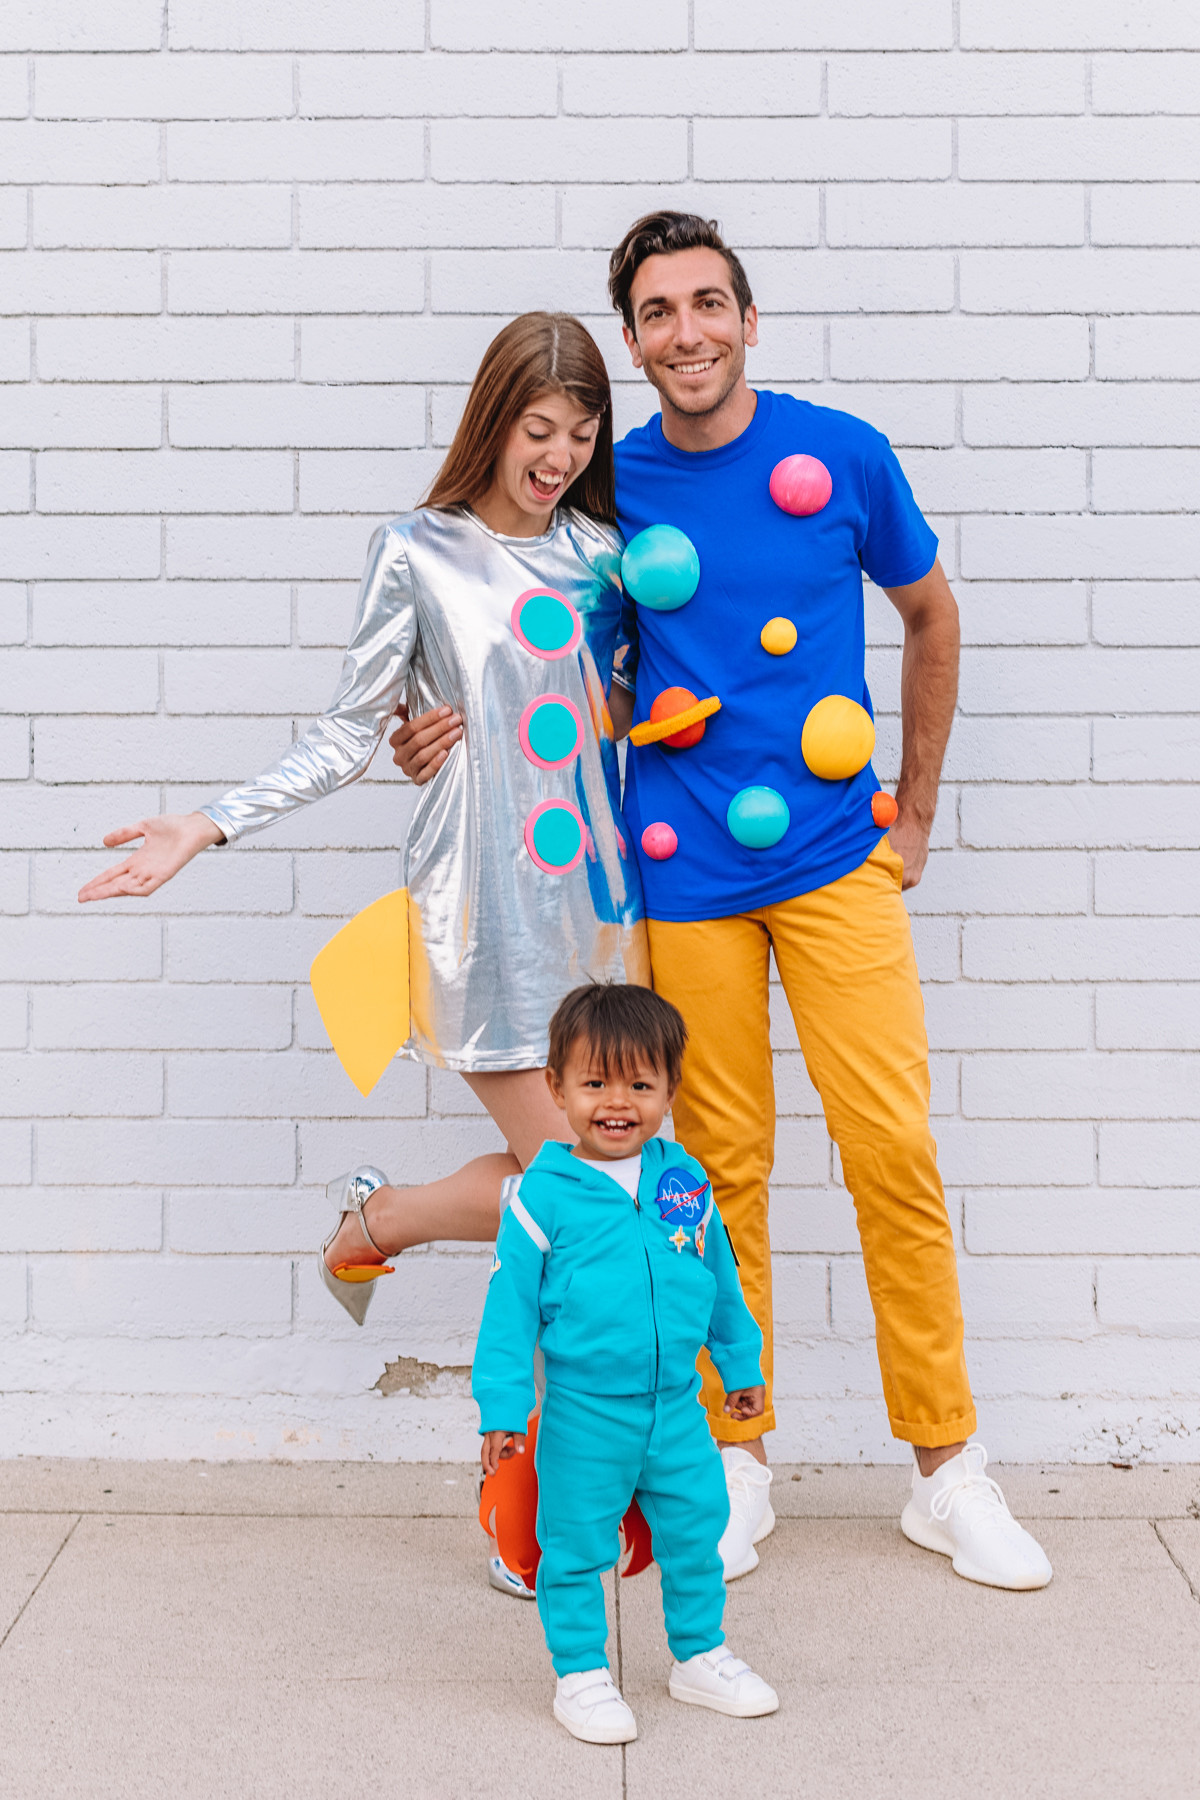 Best ideas about DIY Space Costume . Save or Pin DIY Space Family Costume Studio DIY Now.